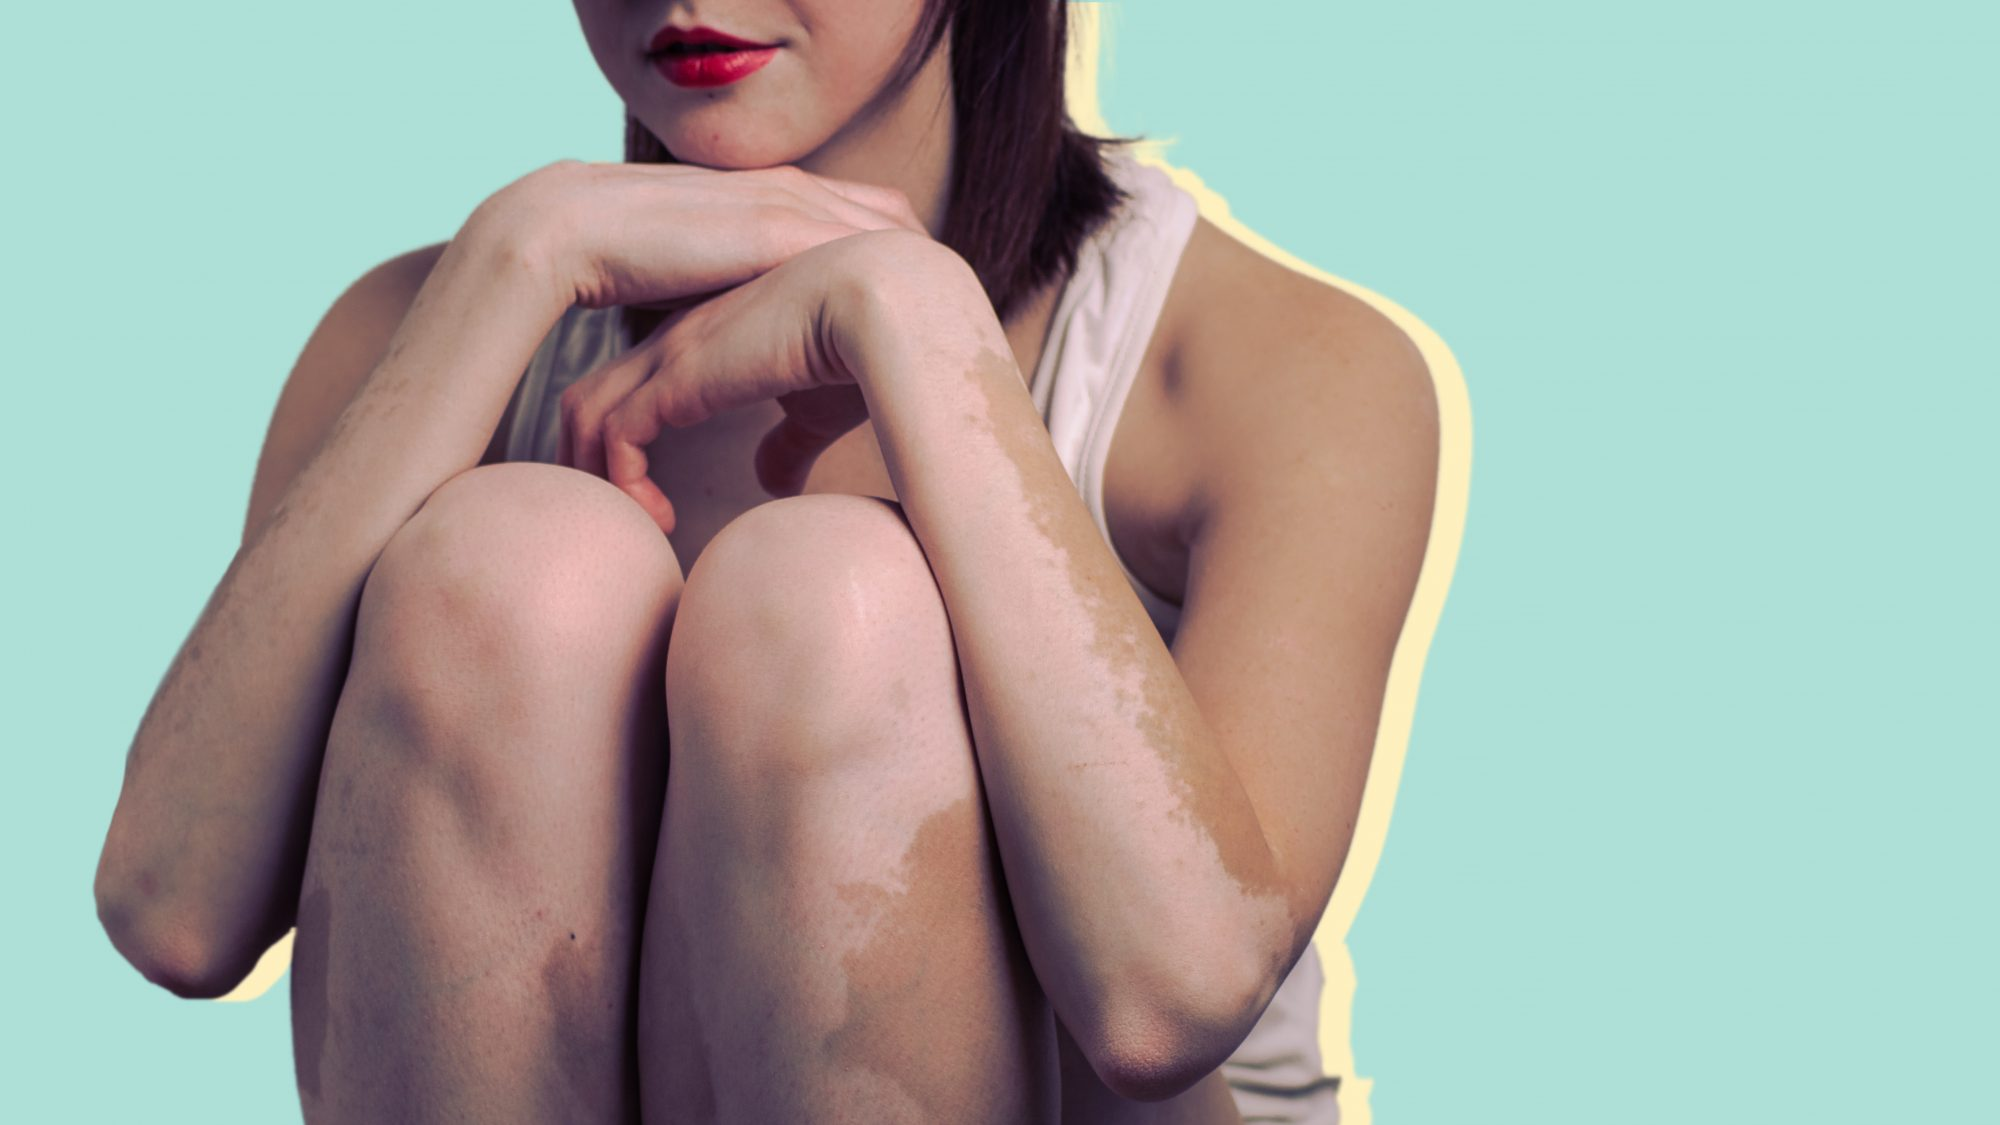 4 Vitiligo Treatment Options to Consider